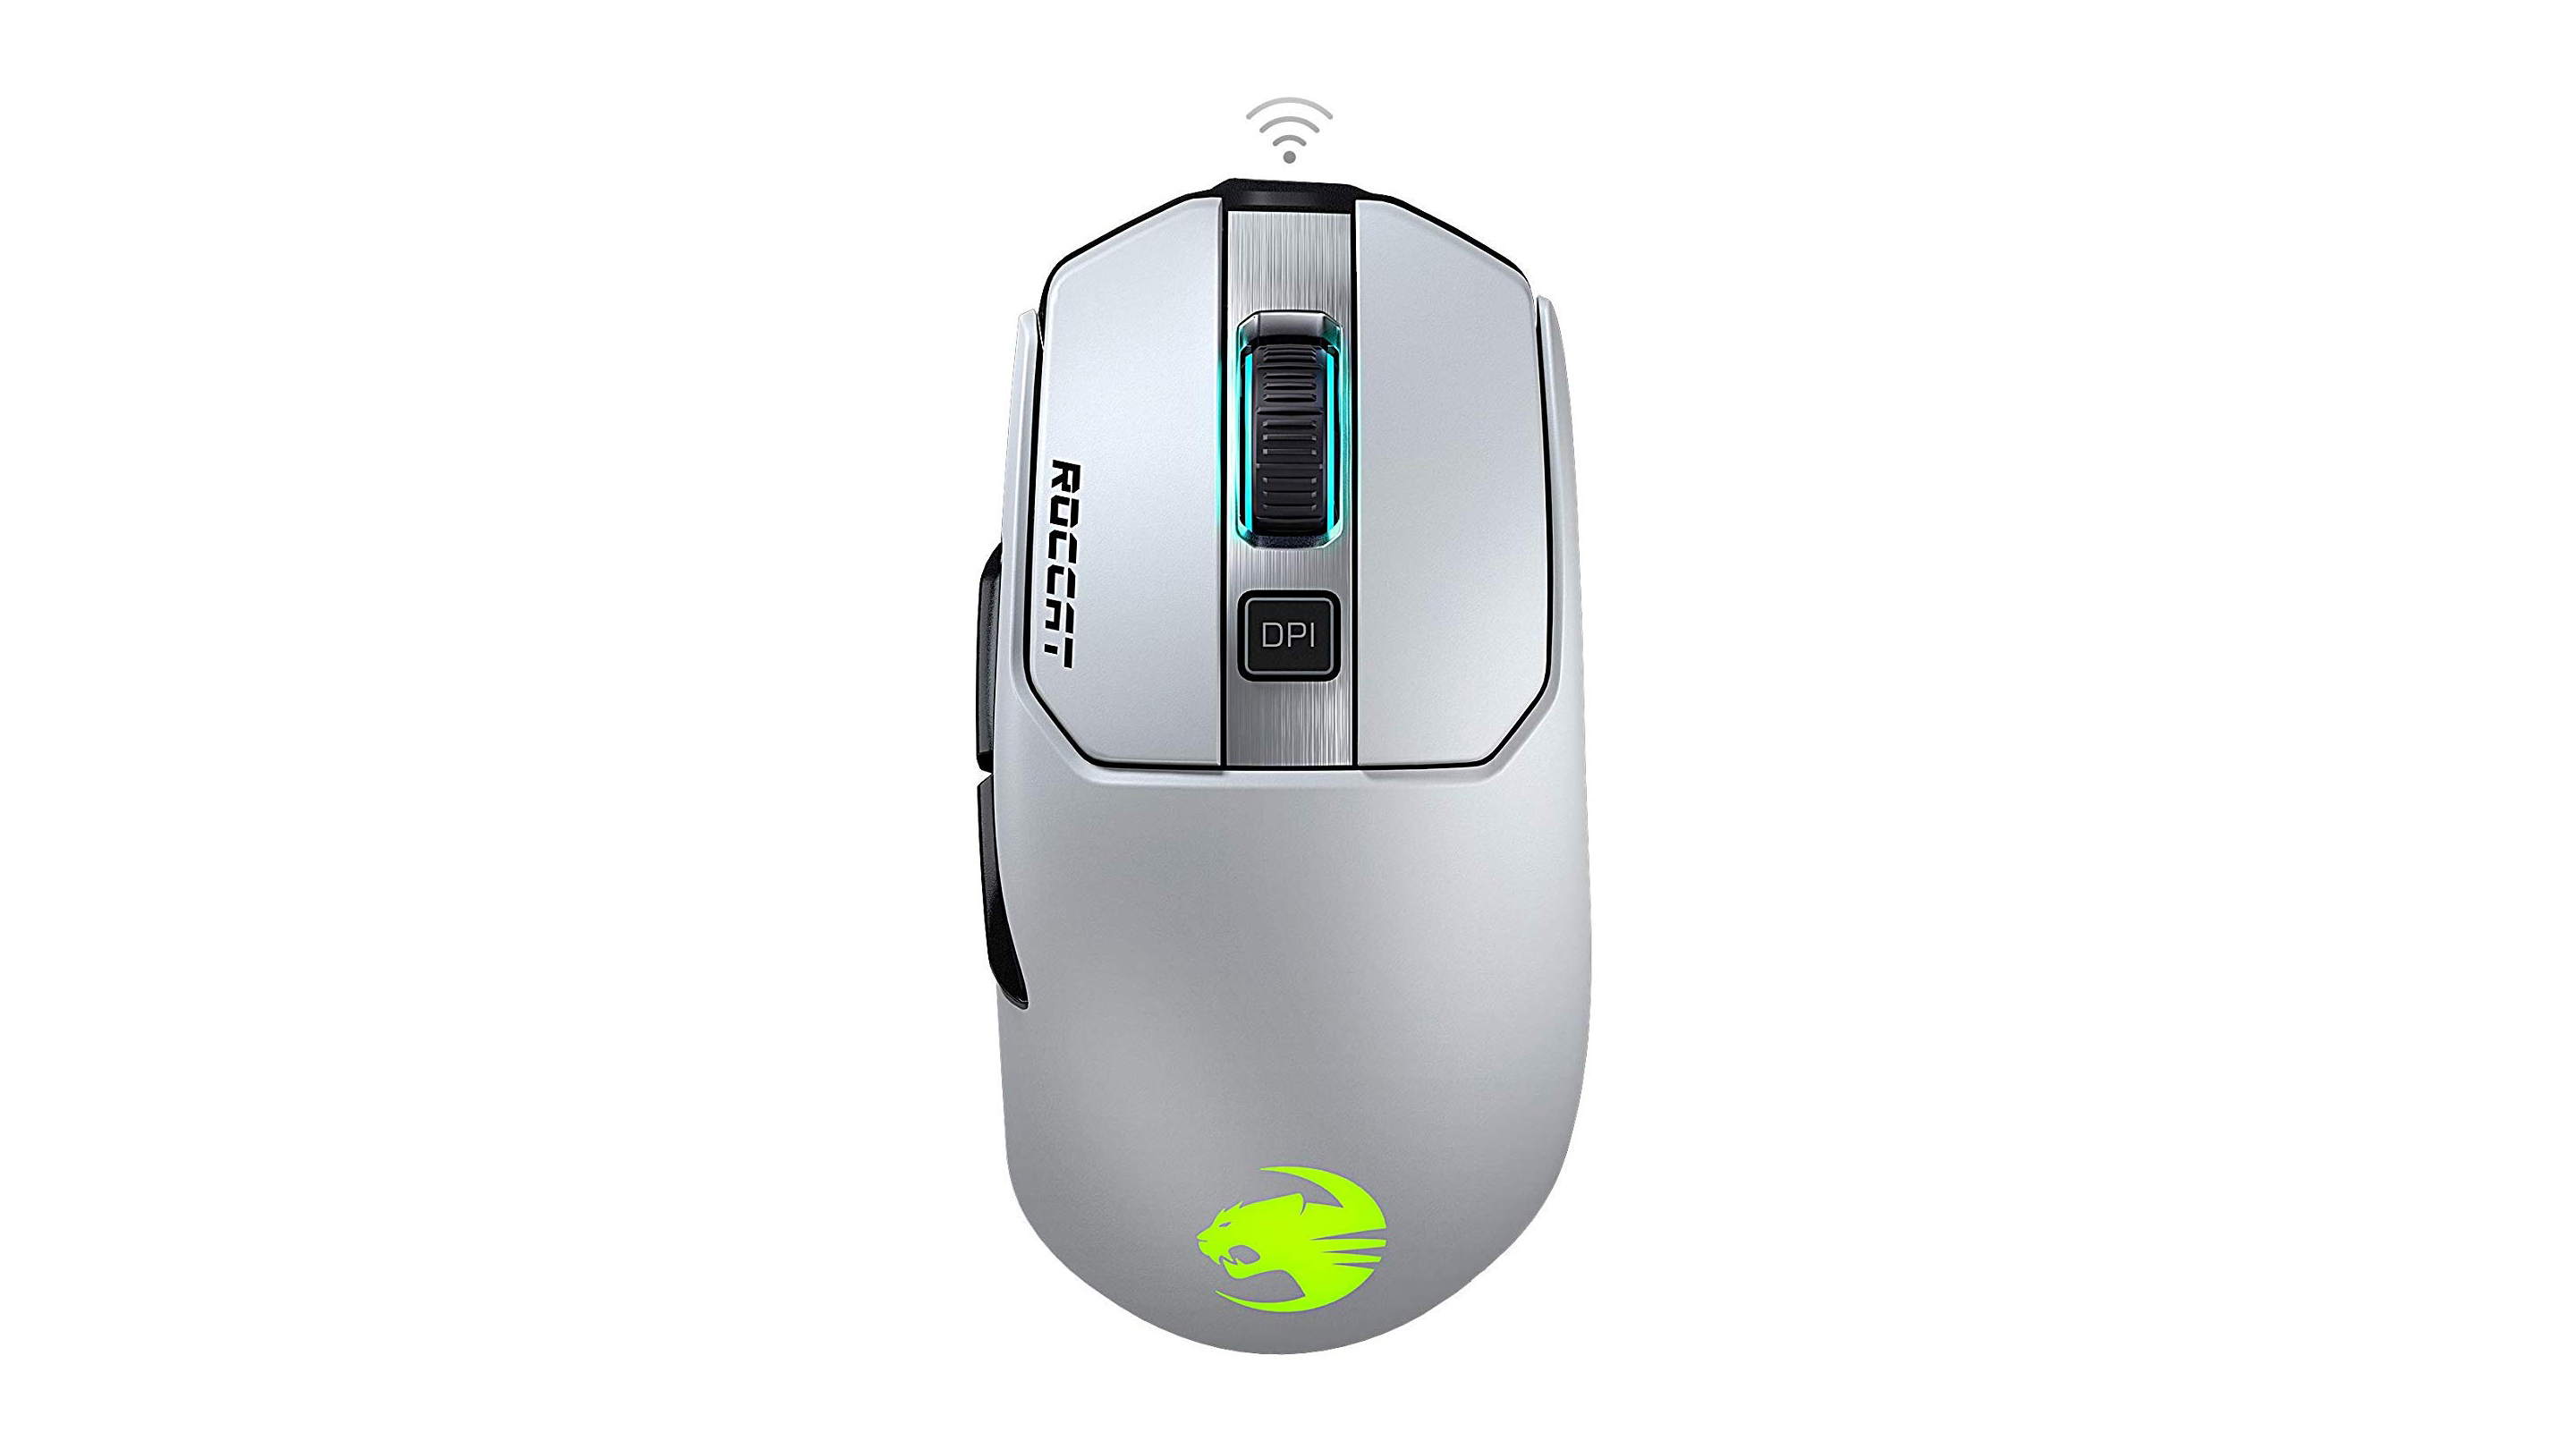 Best wireless mouse: Roccat Kain 202 AIMO